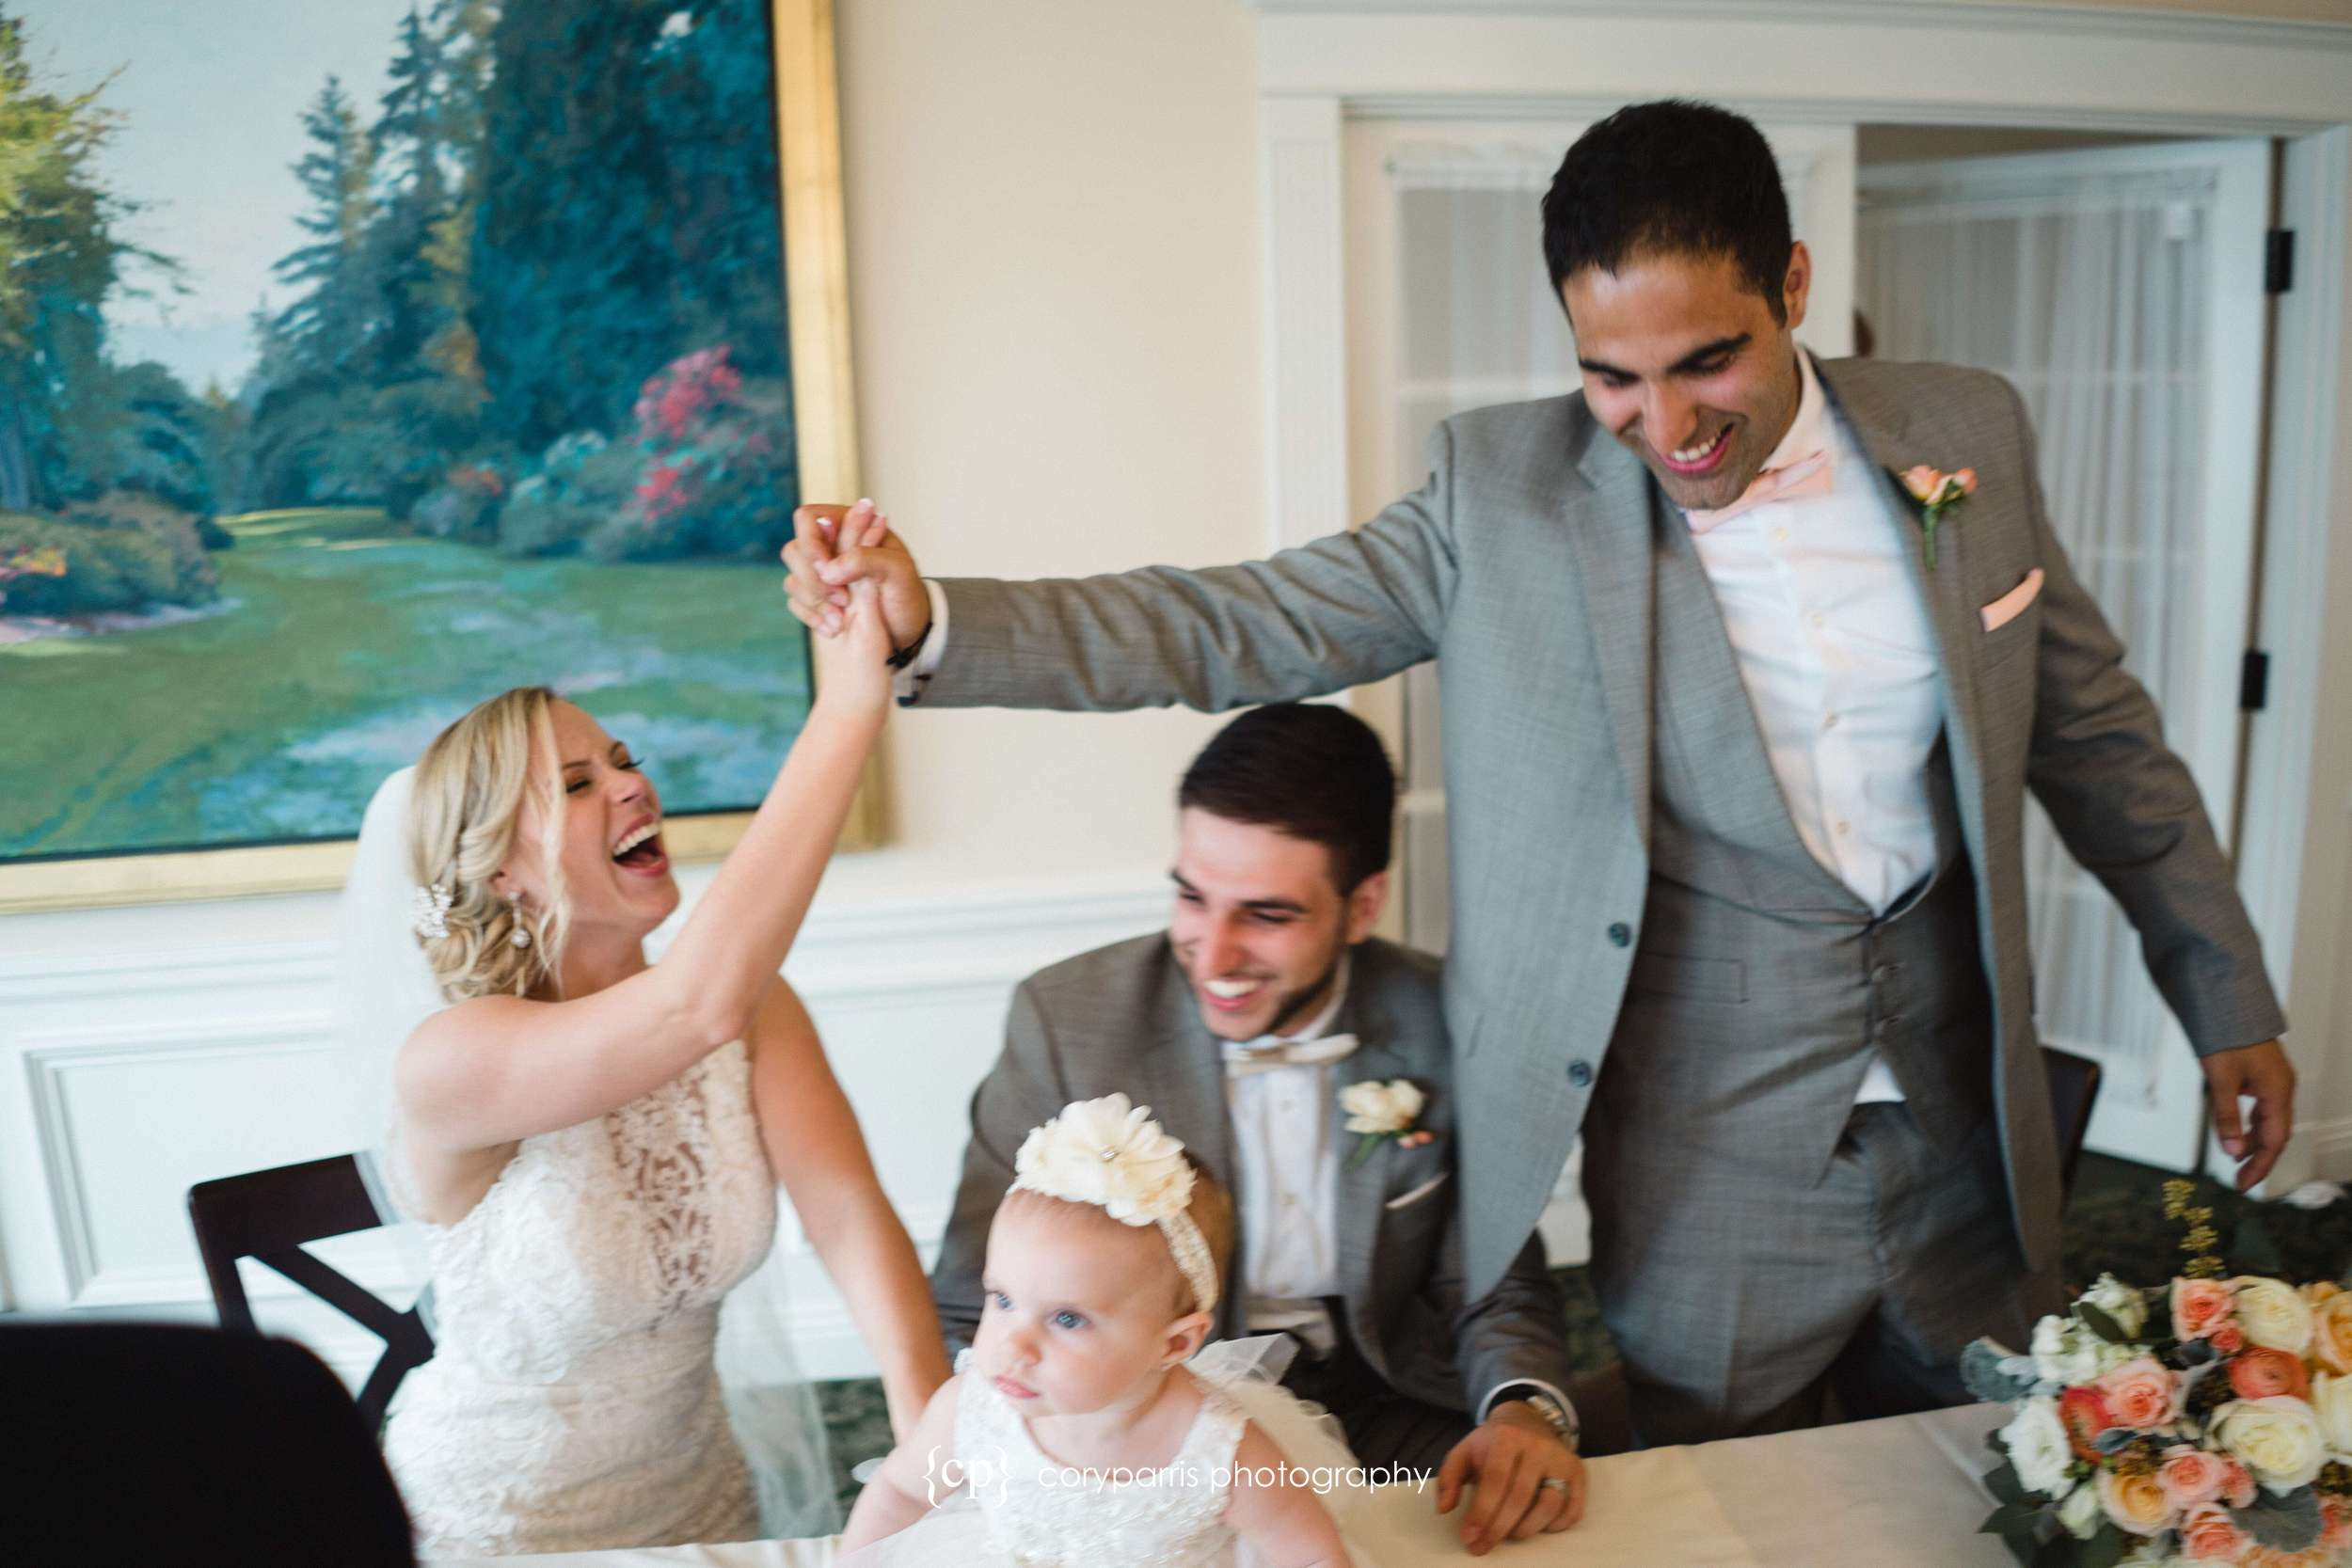 High five for the new brother-in-law